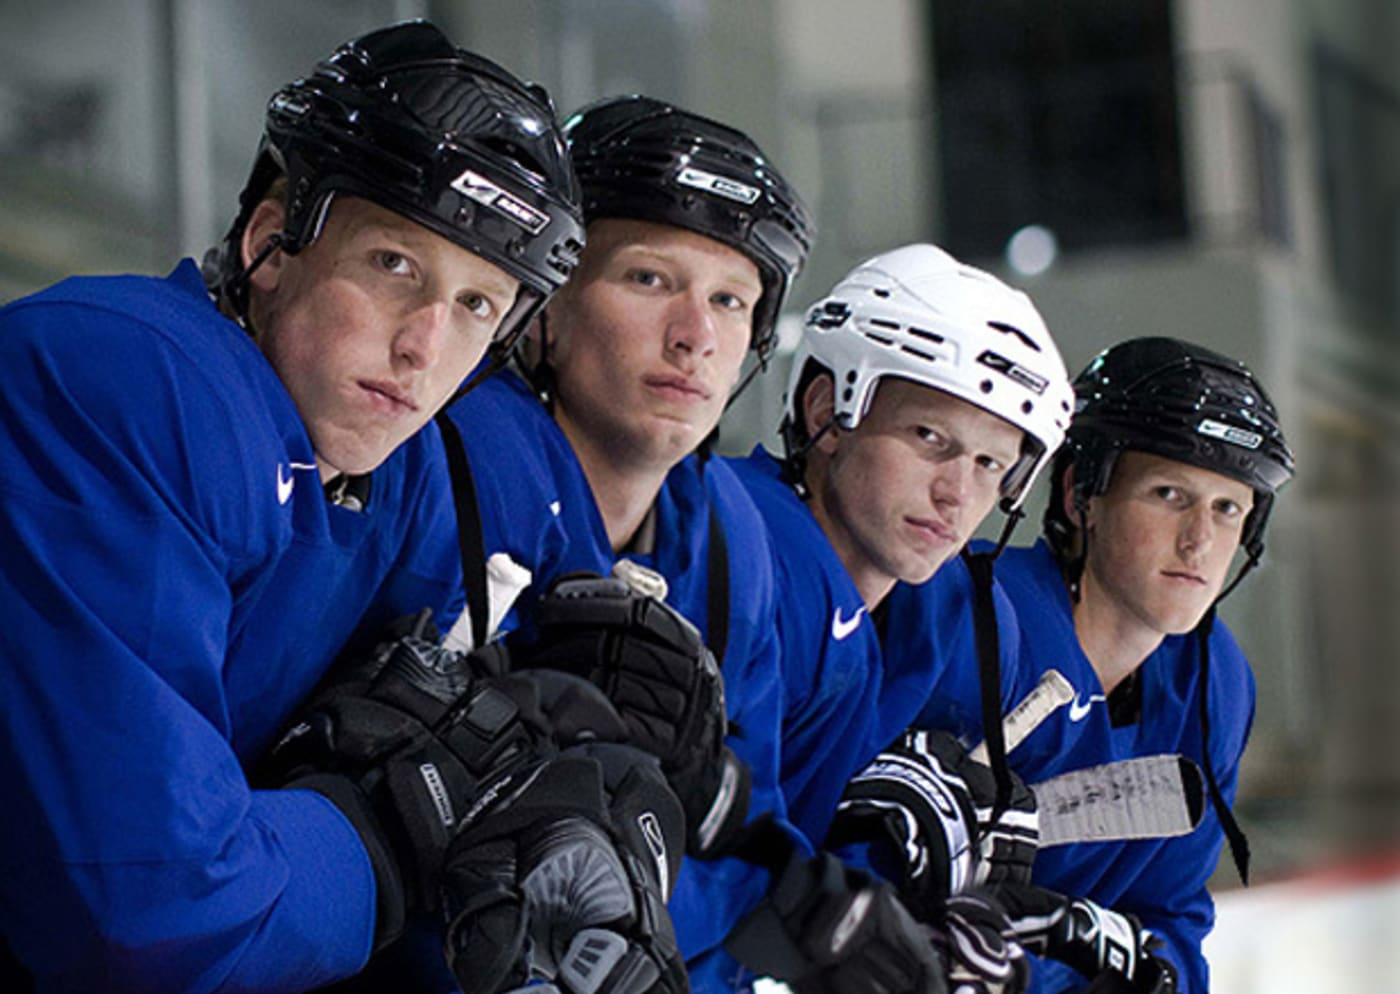 The Staal brothers from Thunder Bay, Ontario, Canada, who are all currently signed to NHL contracts